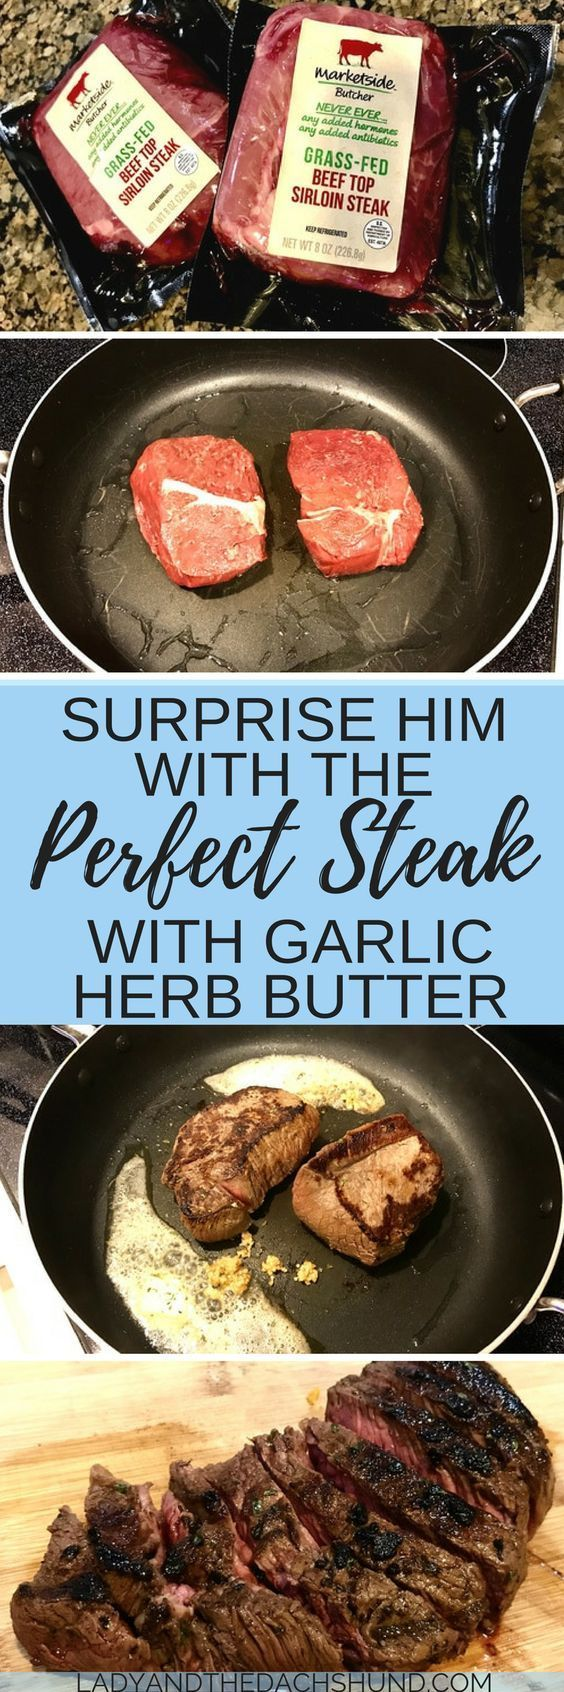 "Perfect steak with an easy steak recipe! Make the perfect steak for two with pan fried steak! Surprise him or impress him by cooking the perfect steak on the stove. Great birthday idea for him or anniversary dinner. An ""impress him dinner"" is the perfect surprise idea for him!"